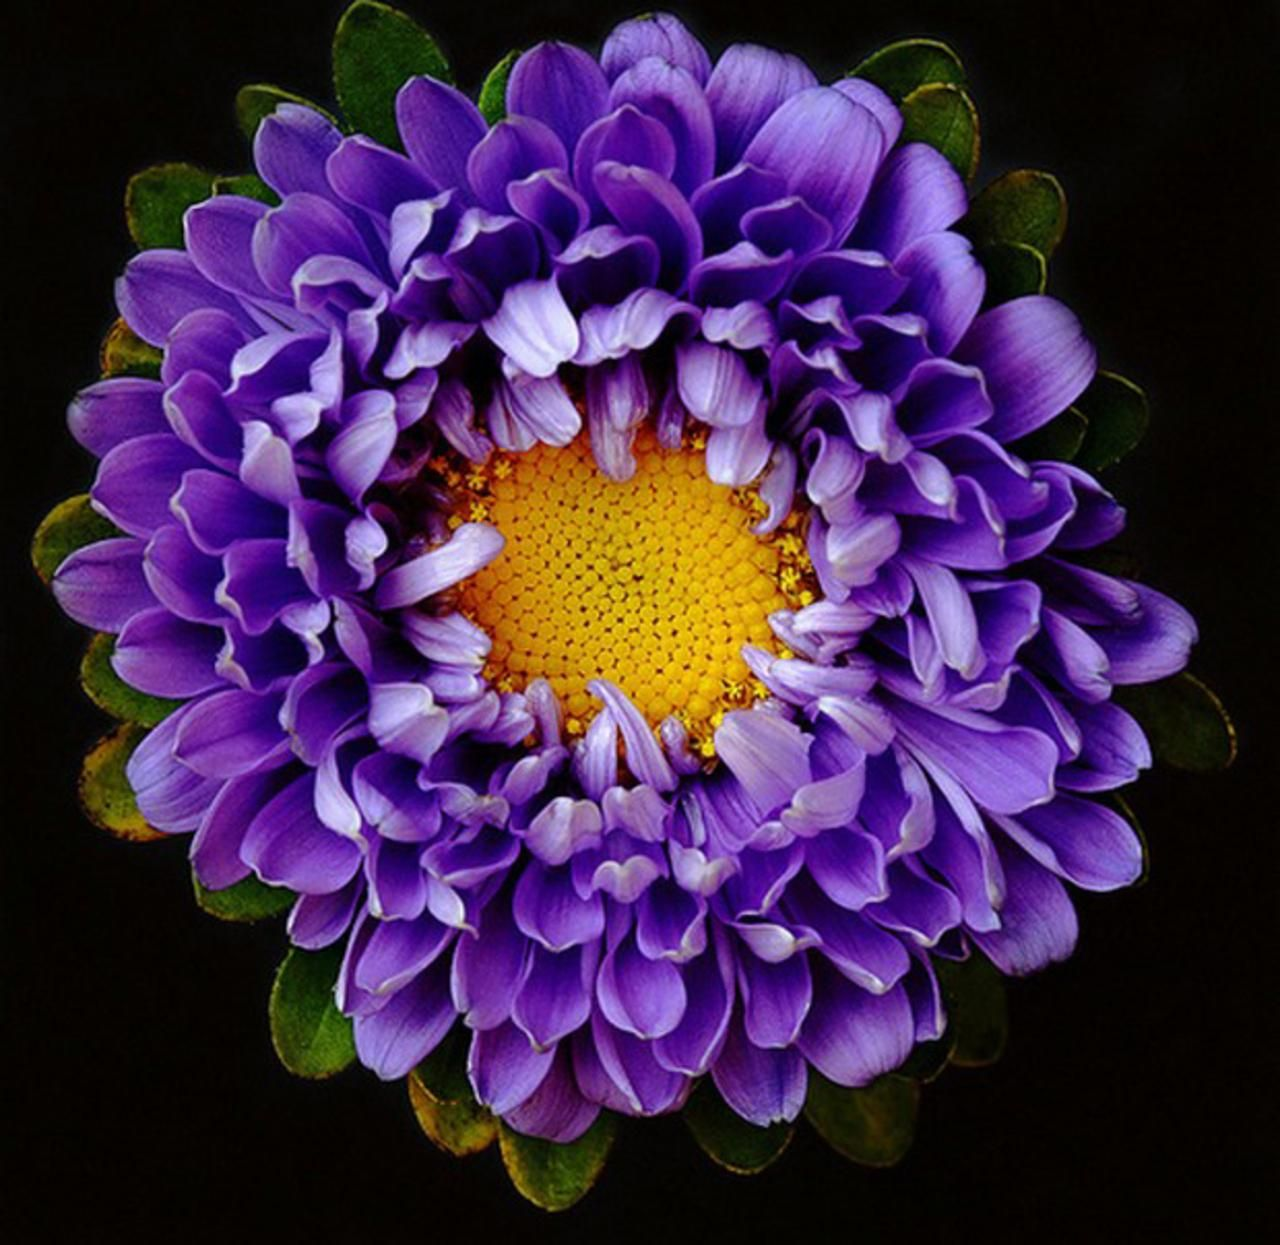 Flower bloom - (#107812) - High Quality and Resolution Wallpapers ...